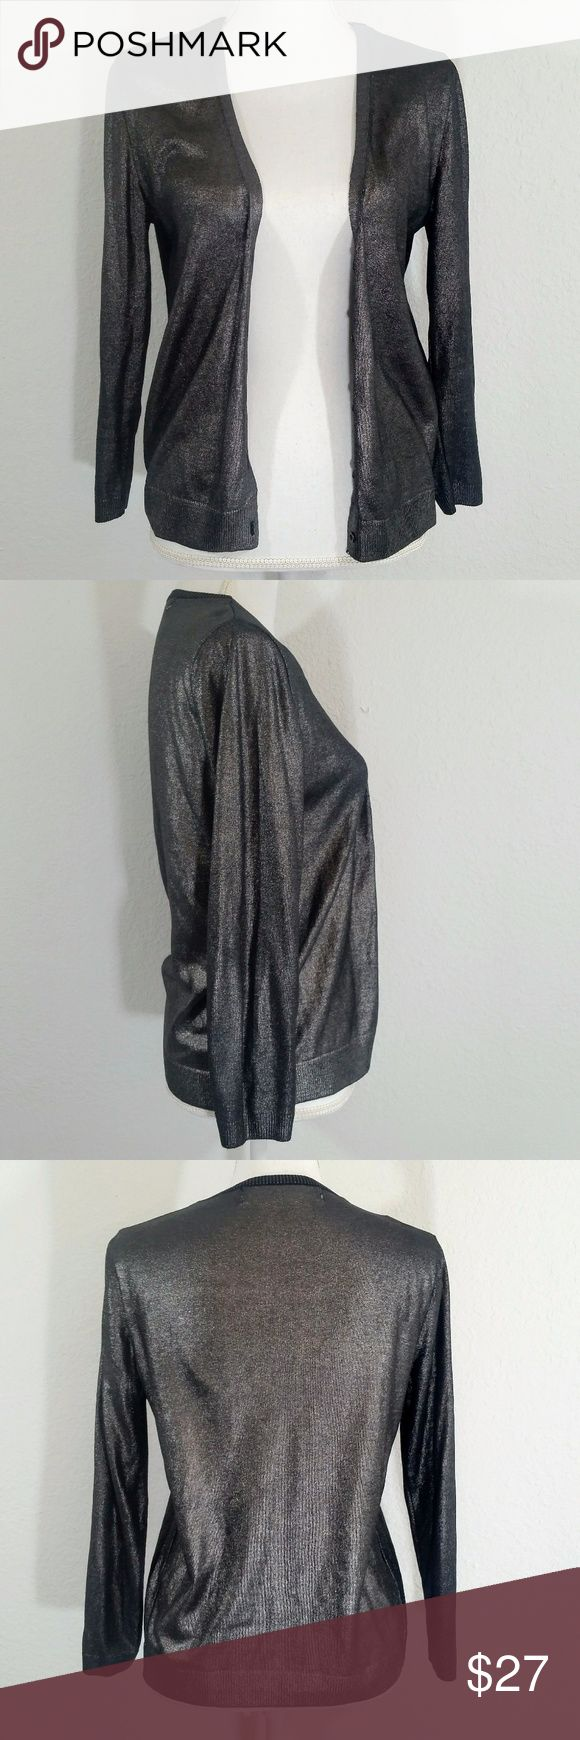 """Zara Knit Metallic Cardigan #186 Hi Guys! i'm Selling this Zara Knit metallic cardigan! It's a size Large in good Condition. there's a mark on the inside of the cardigan shown is picture 7. Measurements: Pit to pit is 18"""". Waist about 17"""". Length 23"""". Zara Sweaters Cardigans"""